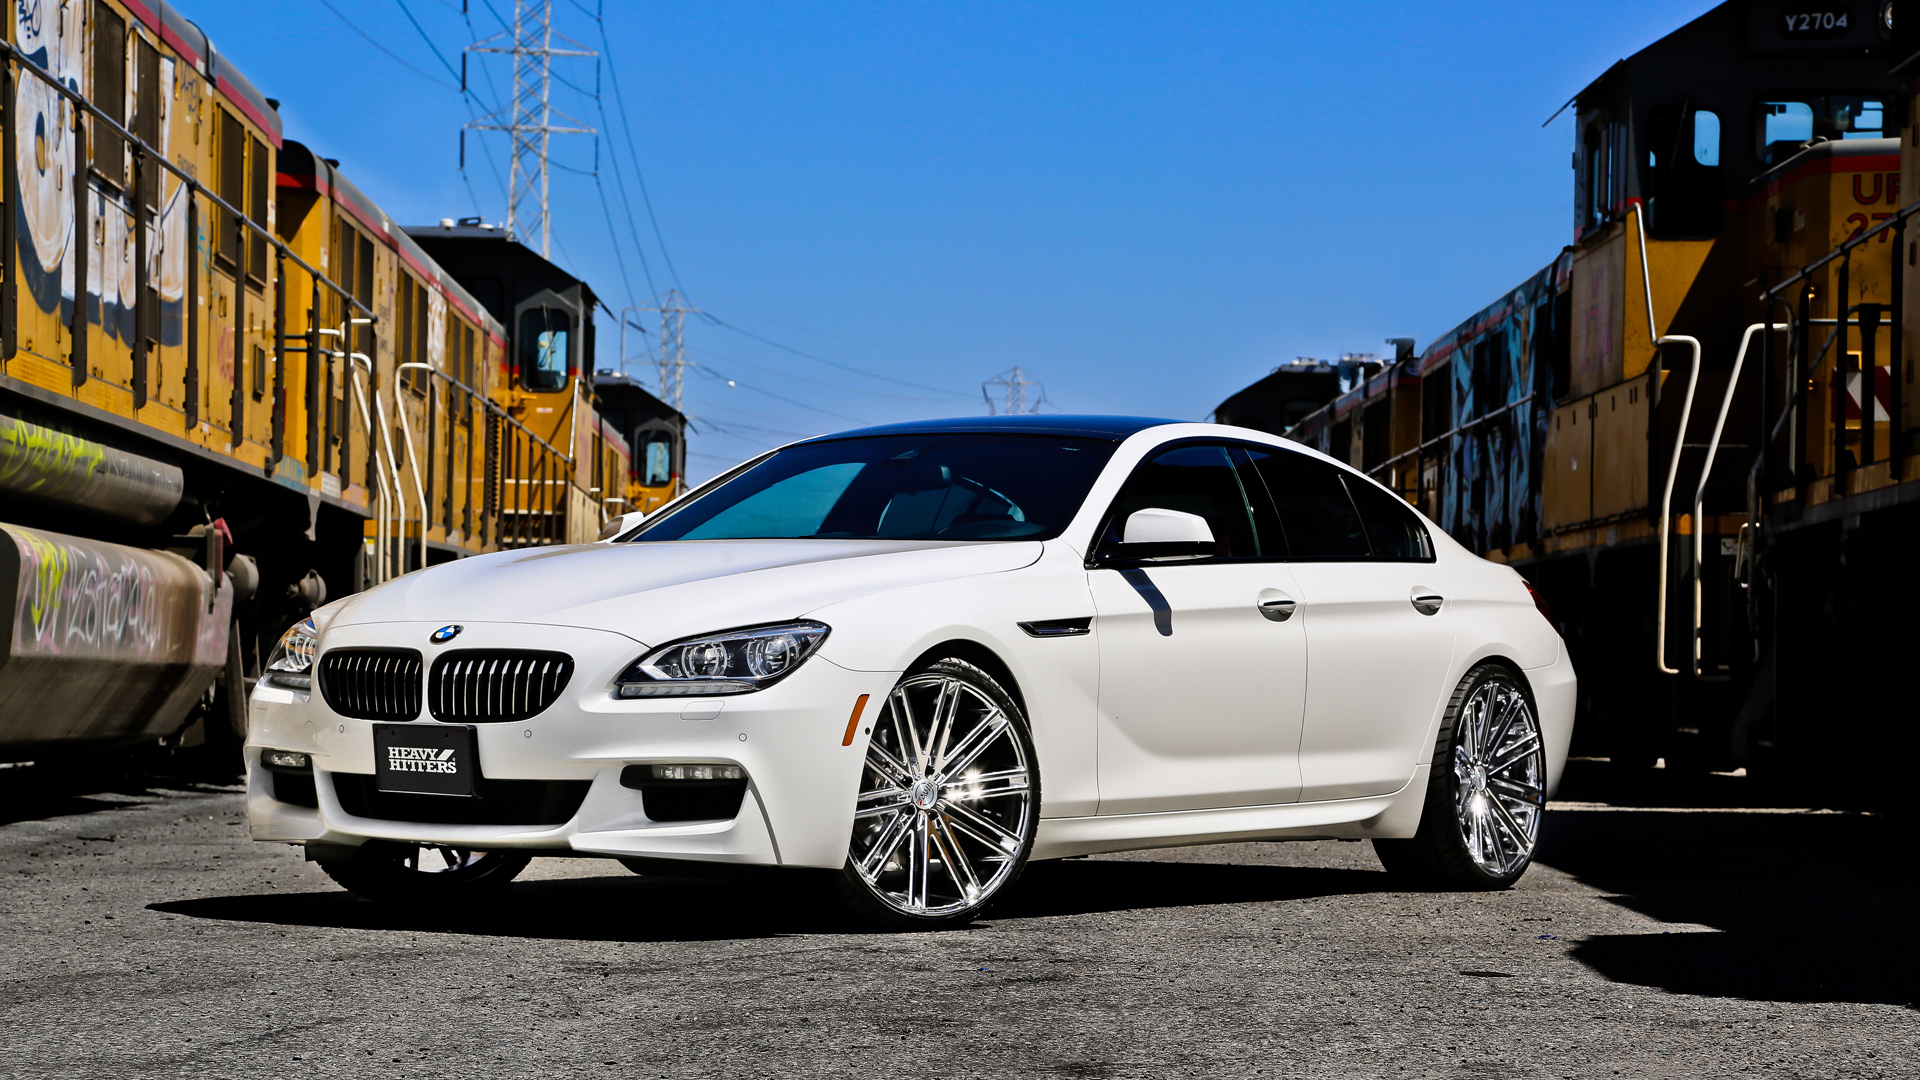 2014 Bmw 640i Gran Coupe Hh11 Heavy Hitter Wheels